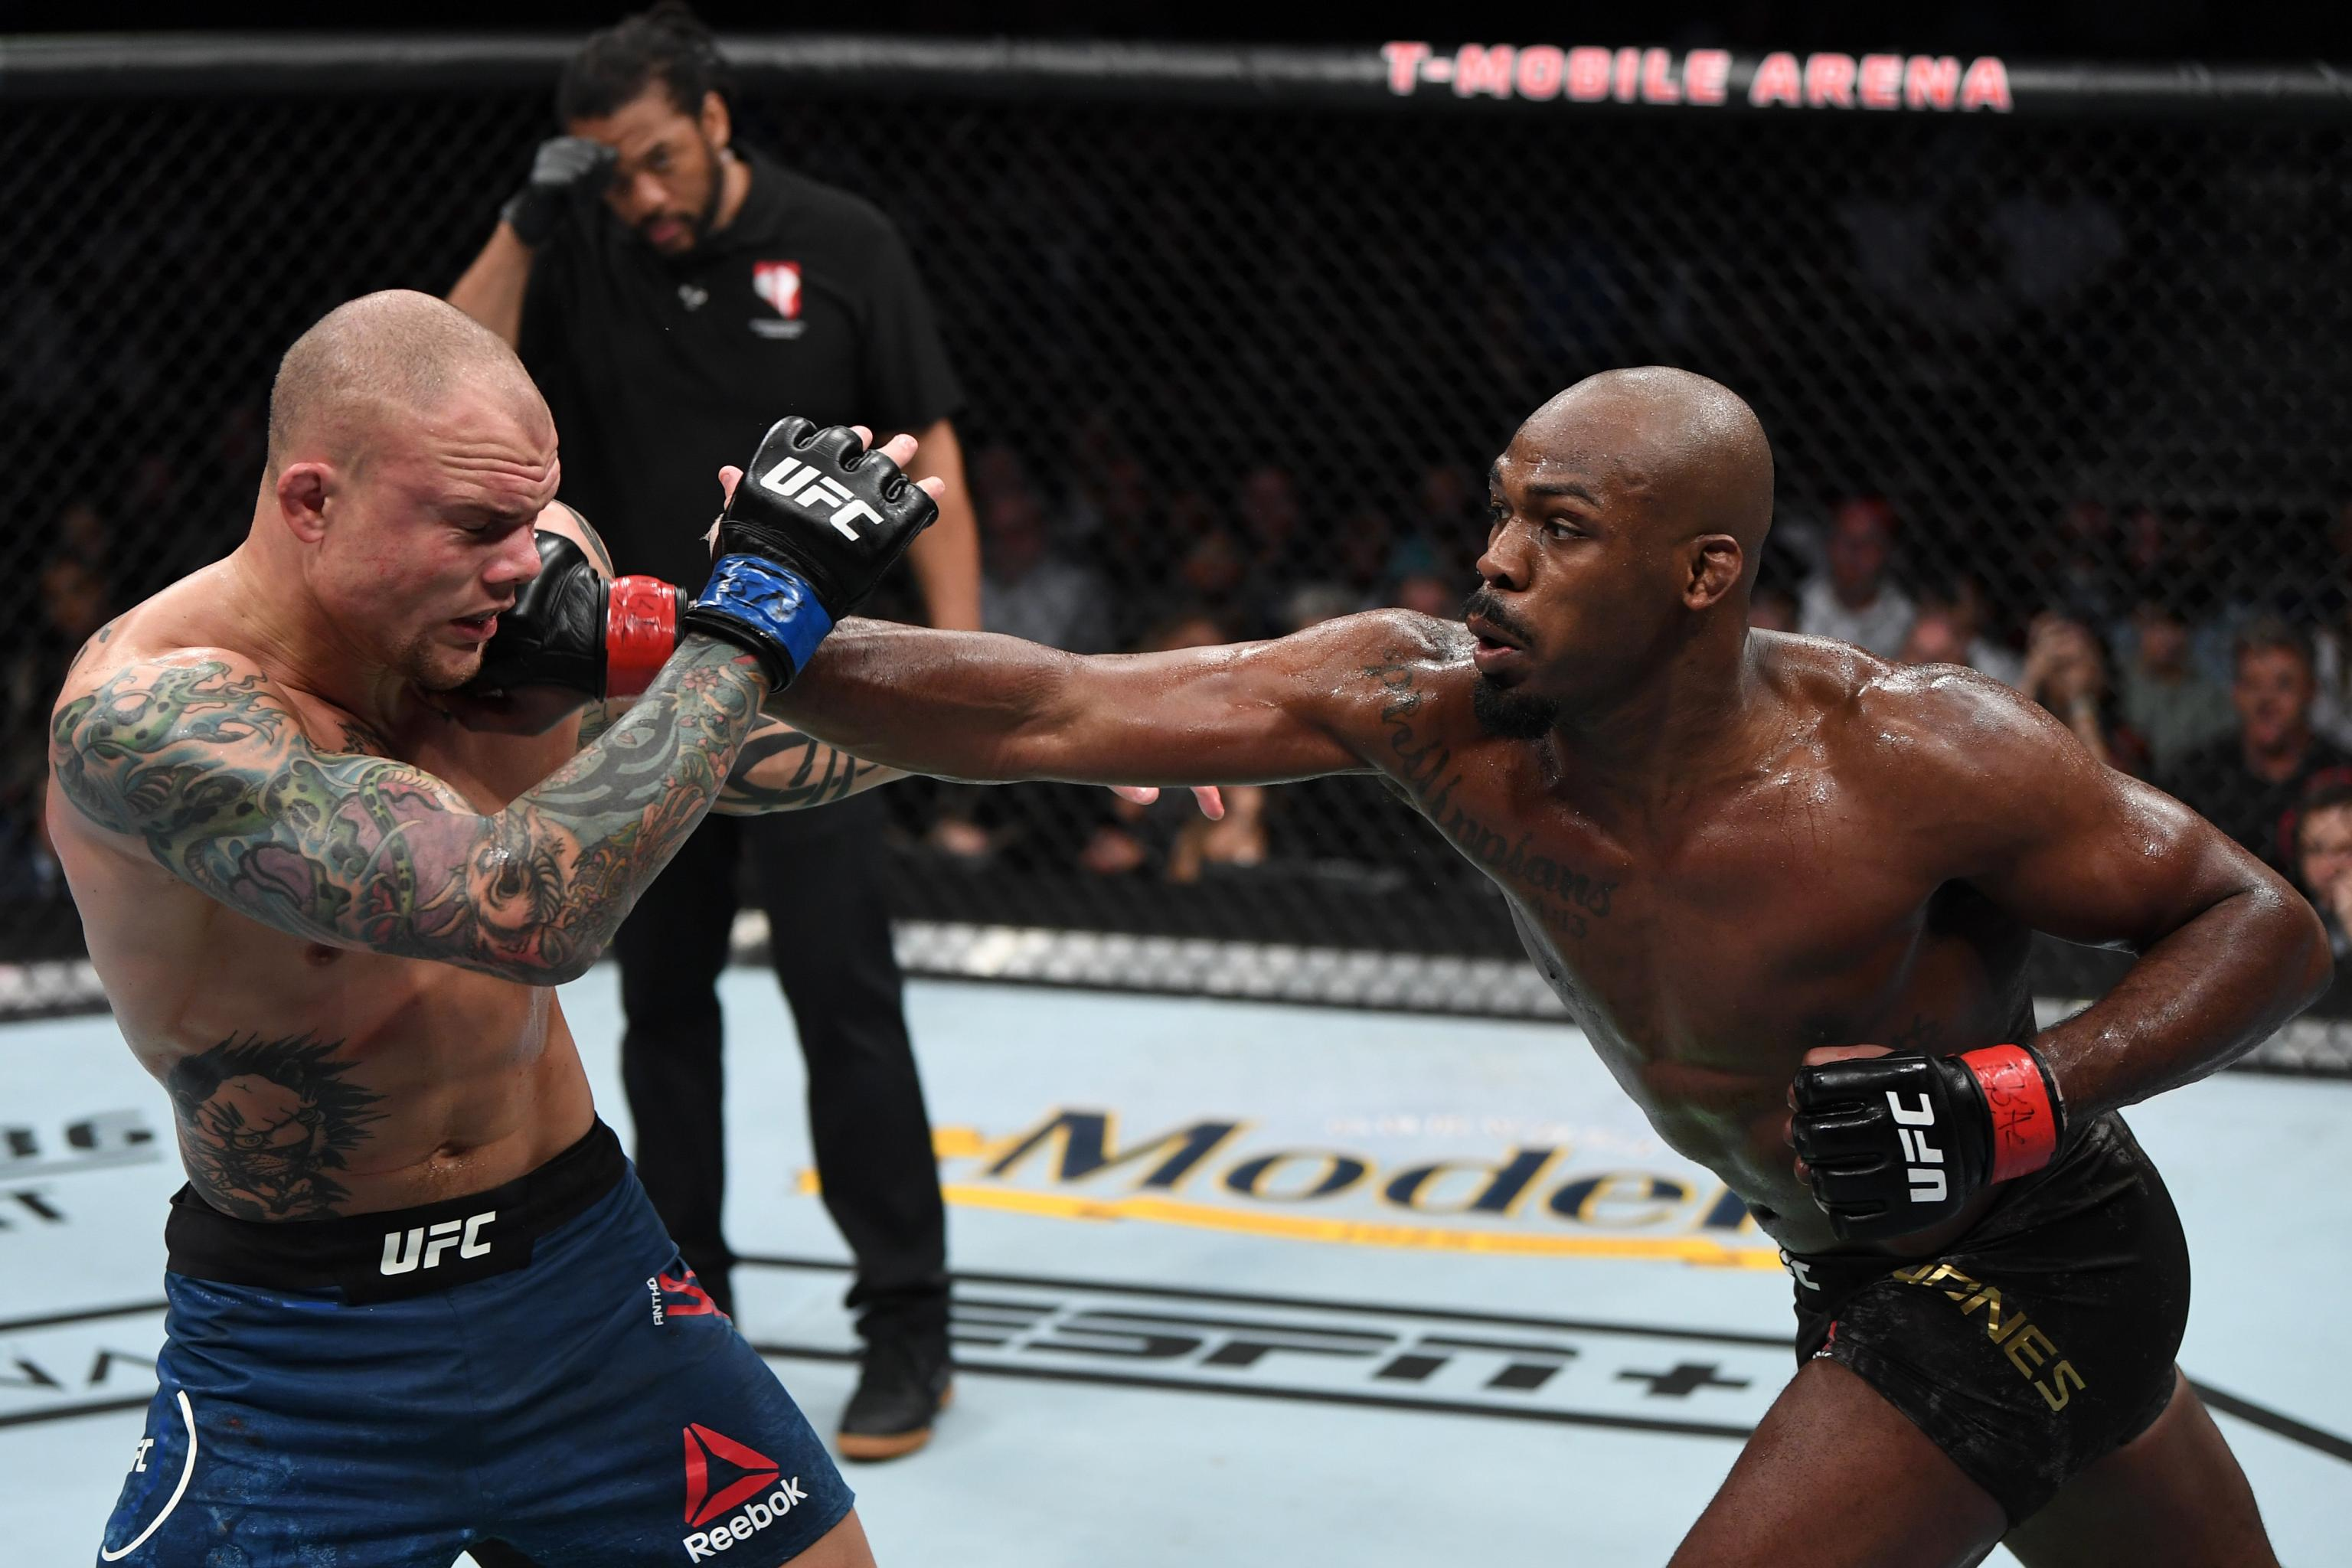 Jon Jones Beats Anthony Smith by Decision to Retain Title at UFC 235